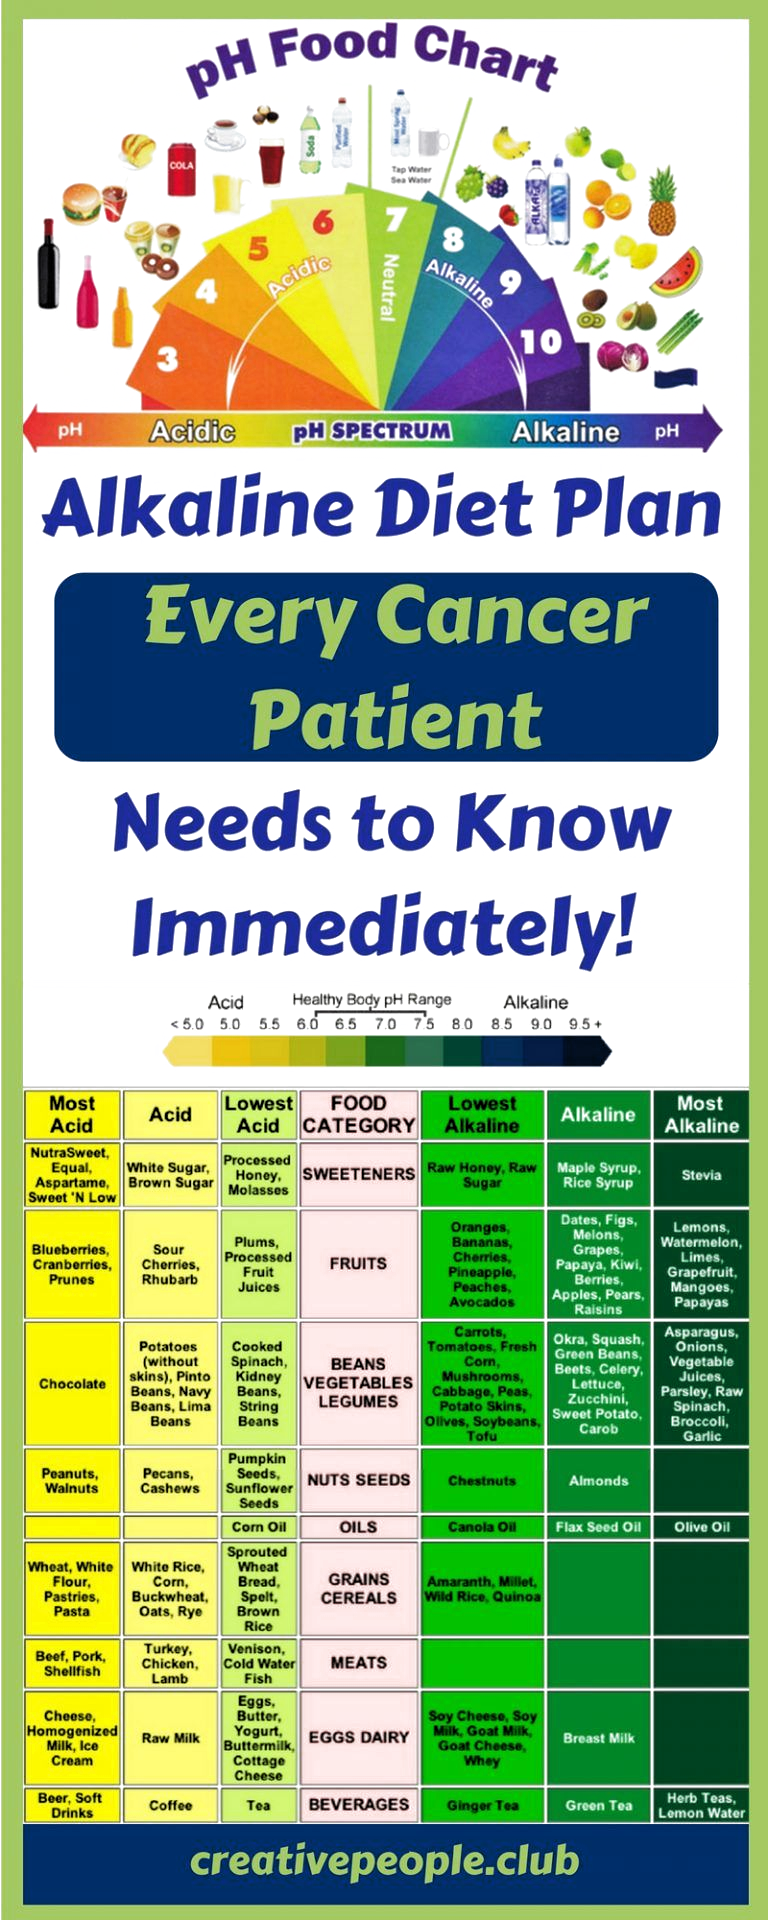 Alkaline Diet Plan Every Cancer Patient Needs To Know It Immediately Creative People In 2020 Alkaline Diet Plan Alkaline Diet Recipes Alkaline Diet